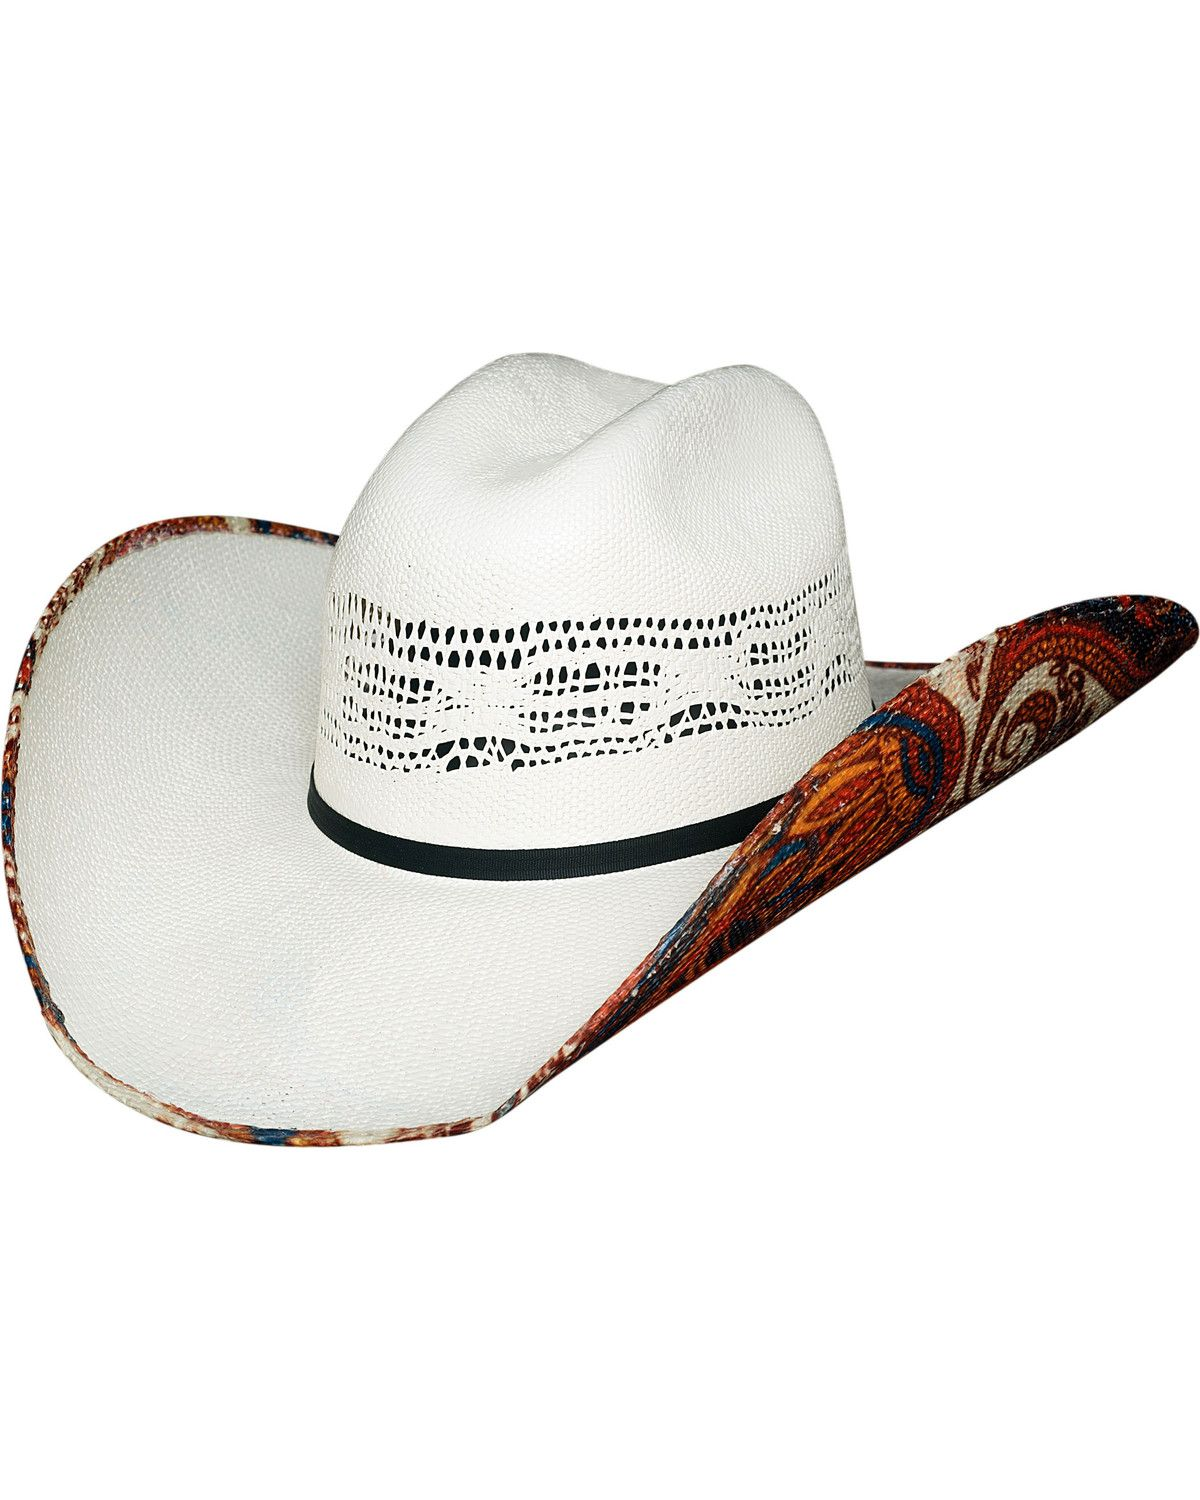 ebfd8b77496b Bullhide Women's Wild Thoughts 1 Straw Cowgirl Hat in 2019 ...